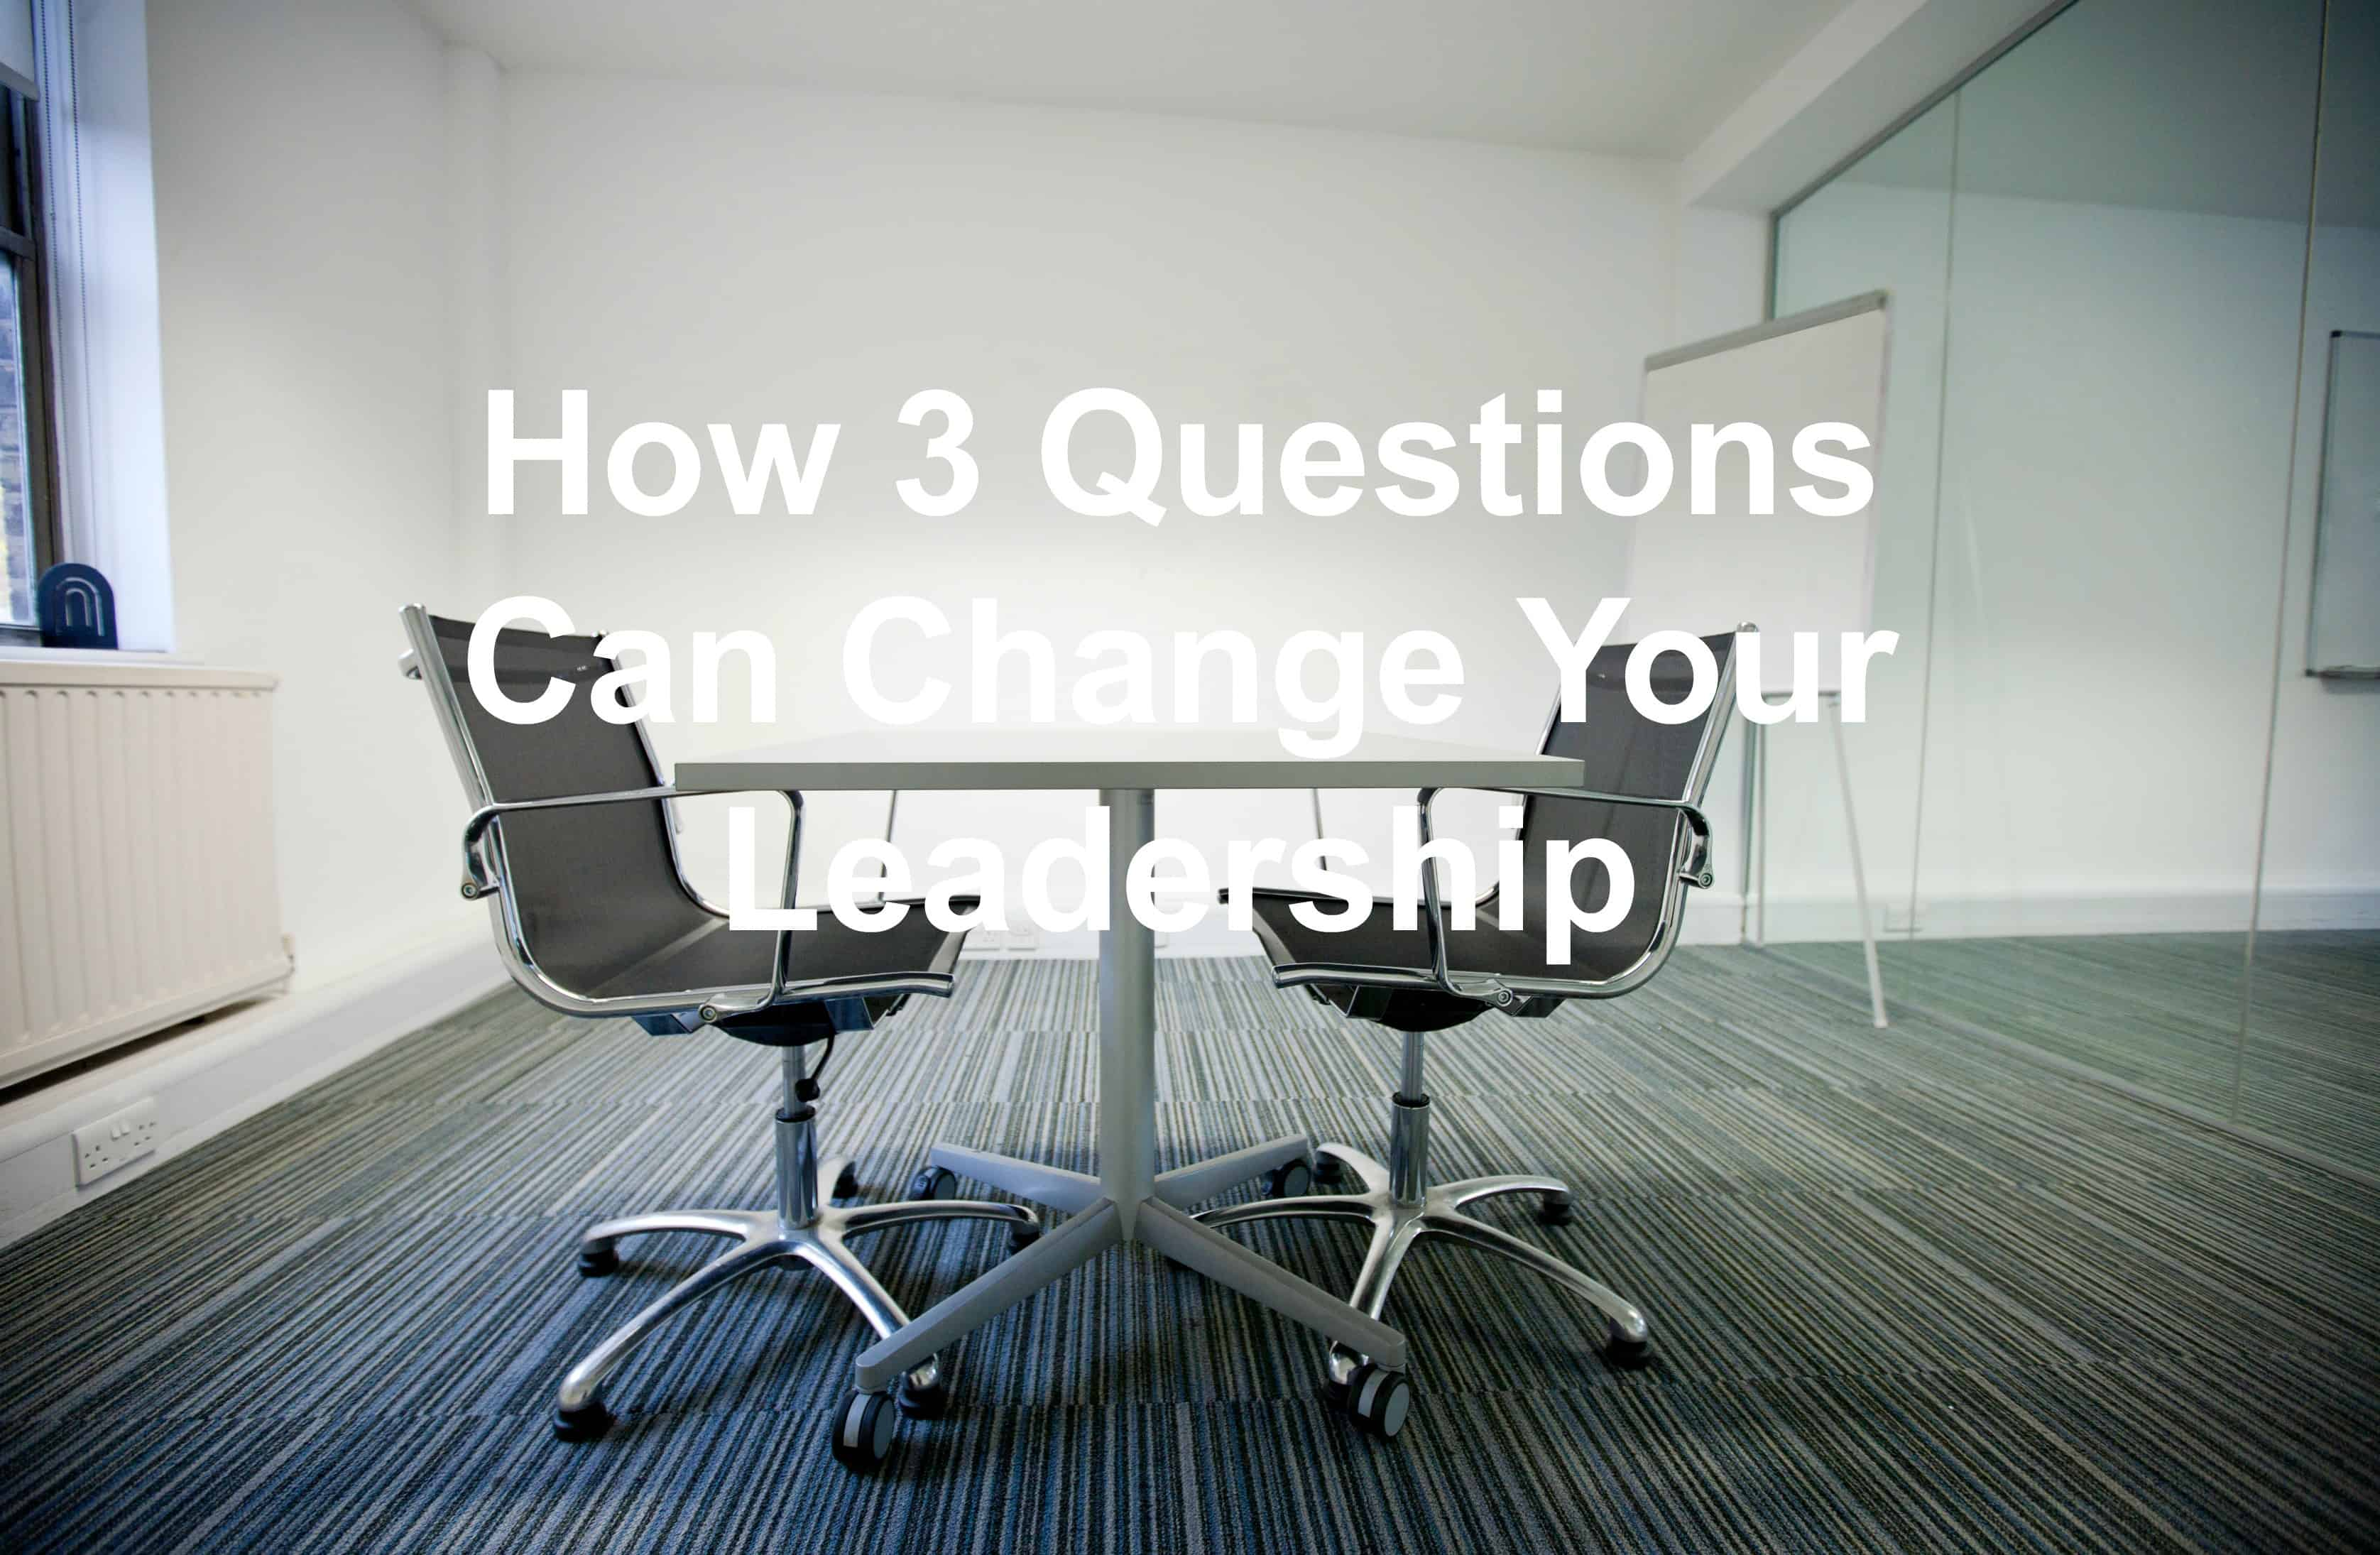 how 3 questions can change your leadership joseph lalonde 2 chairs and 3 questions to change your life